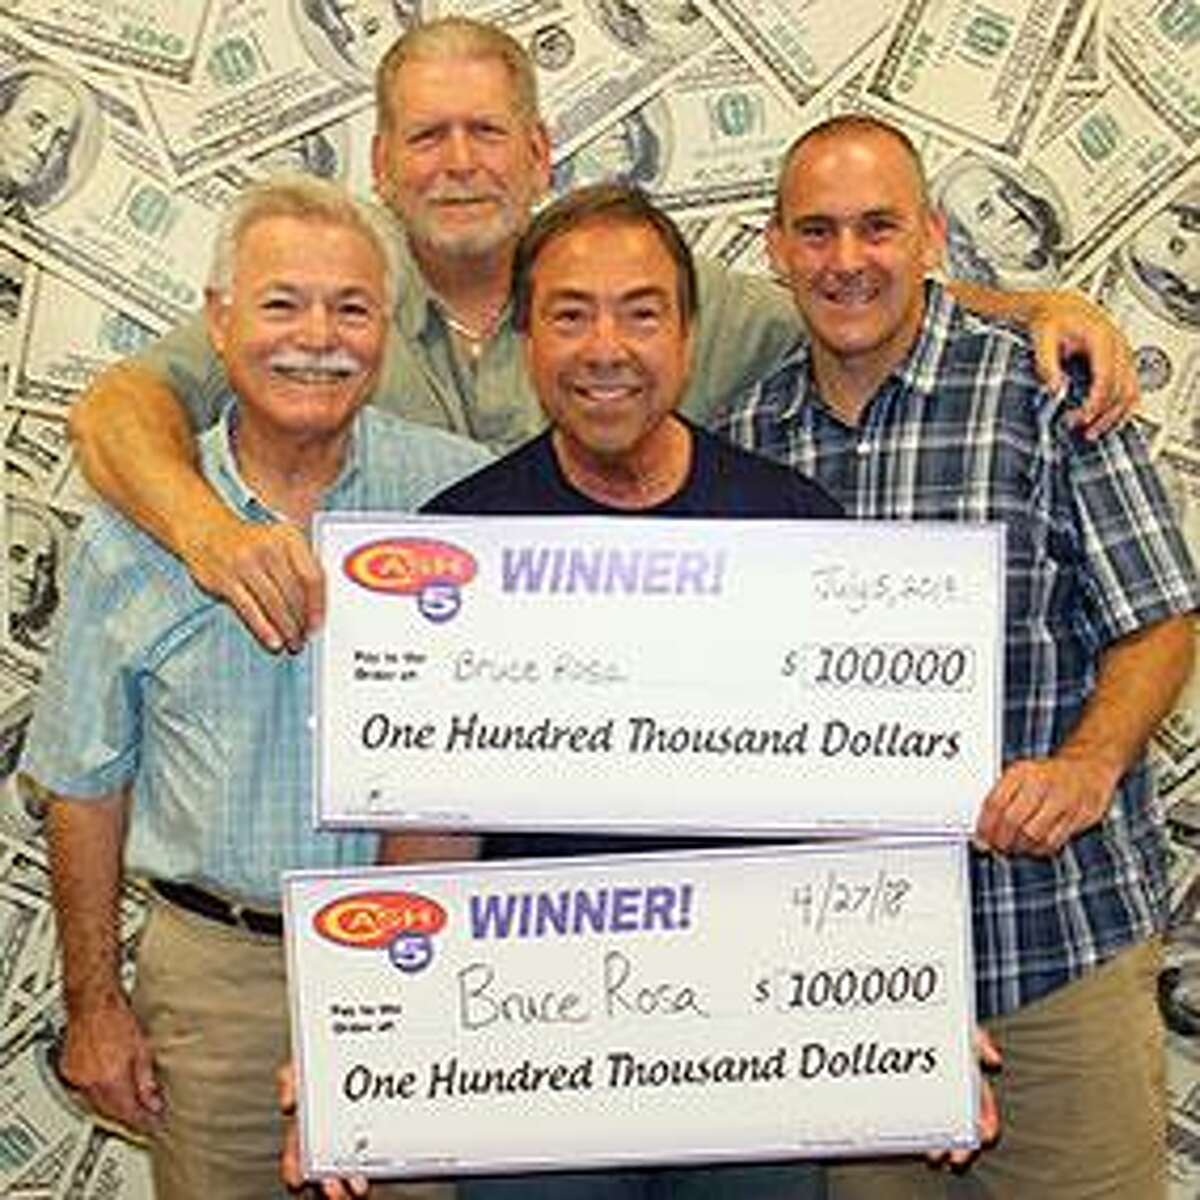 Bruce Rosa poses with his winnings, two friends and his son-in-law on Tuesday, July 9, 2019.